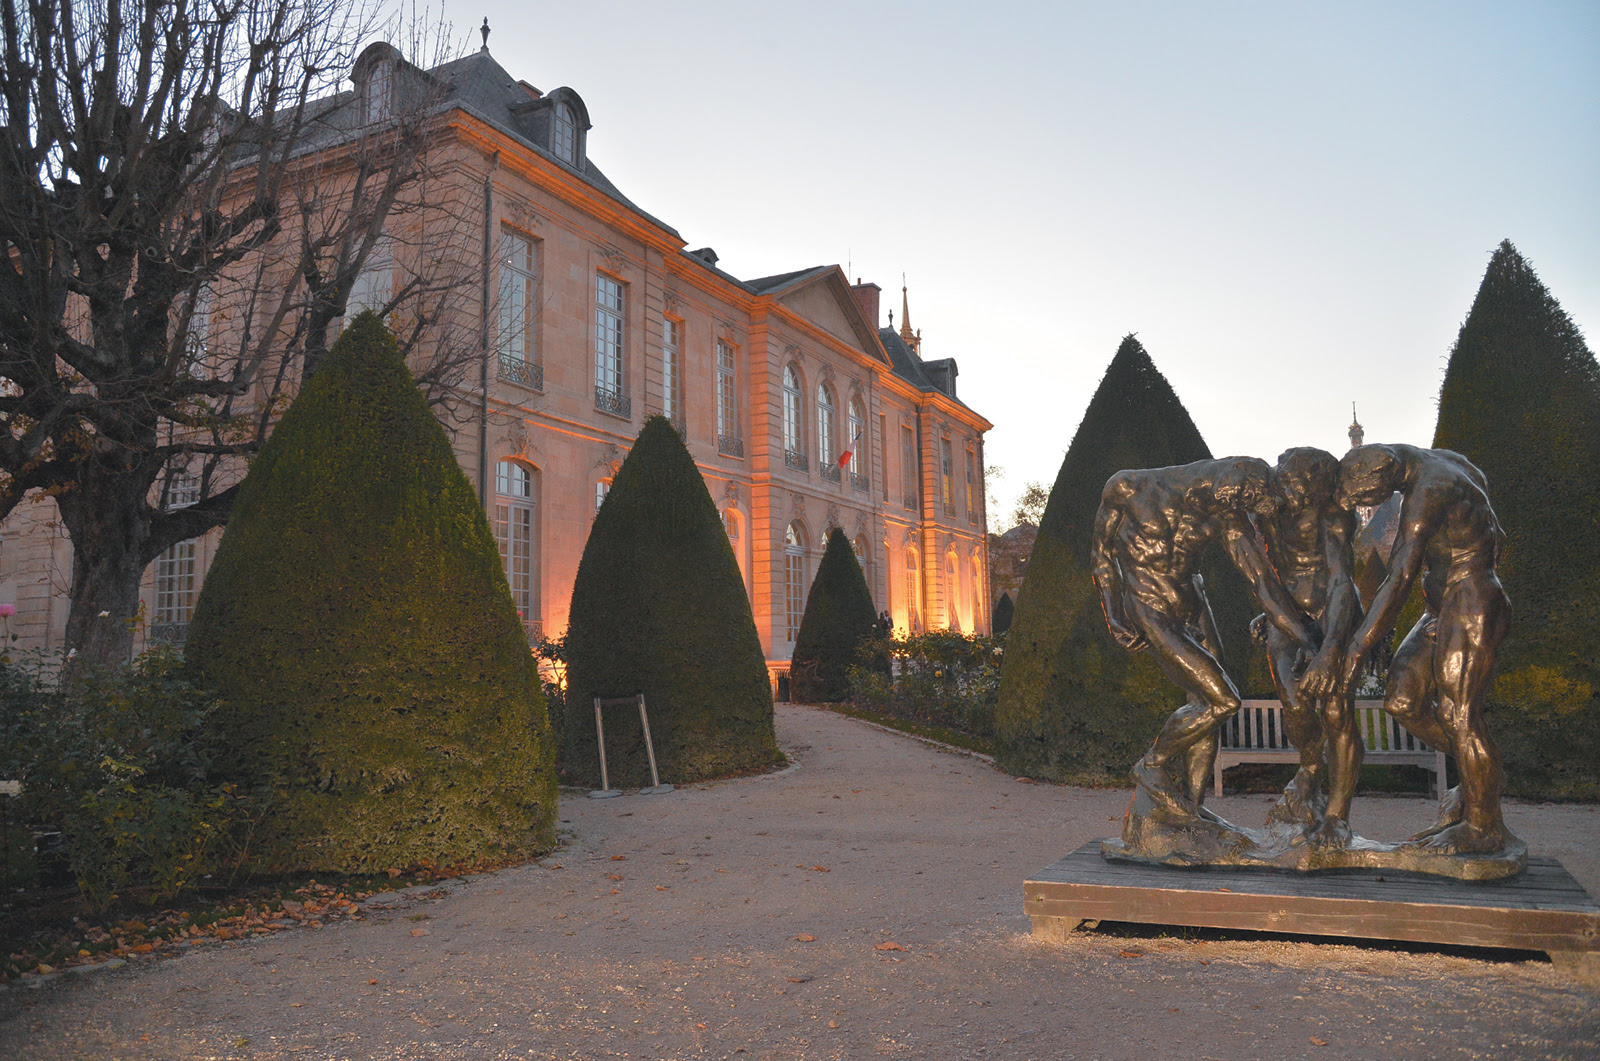 The renovated Rodin Museum in Paris, which reopened to the public on November 12, 2015, on the 175th anniversary of Rodin's birth. At right is Rodin's sculpture The Three Shades (before 1886).